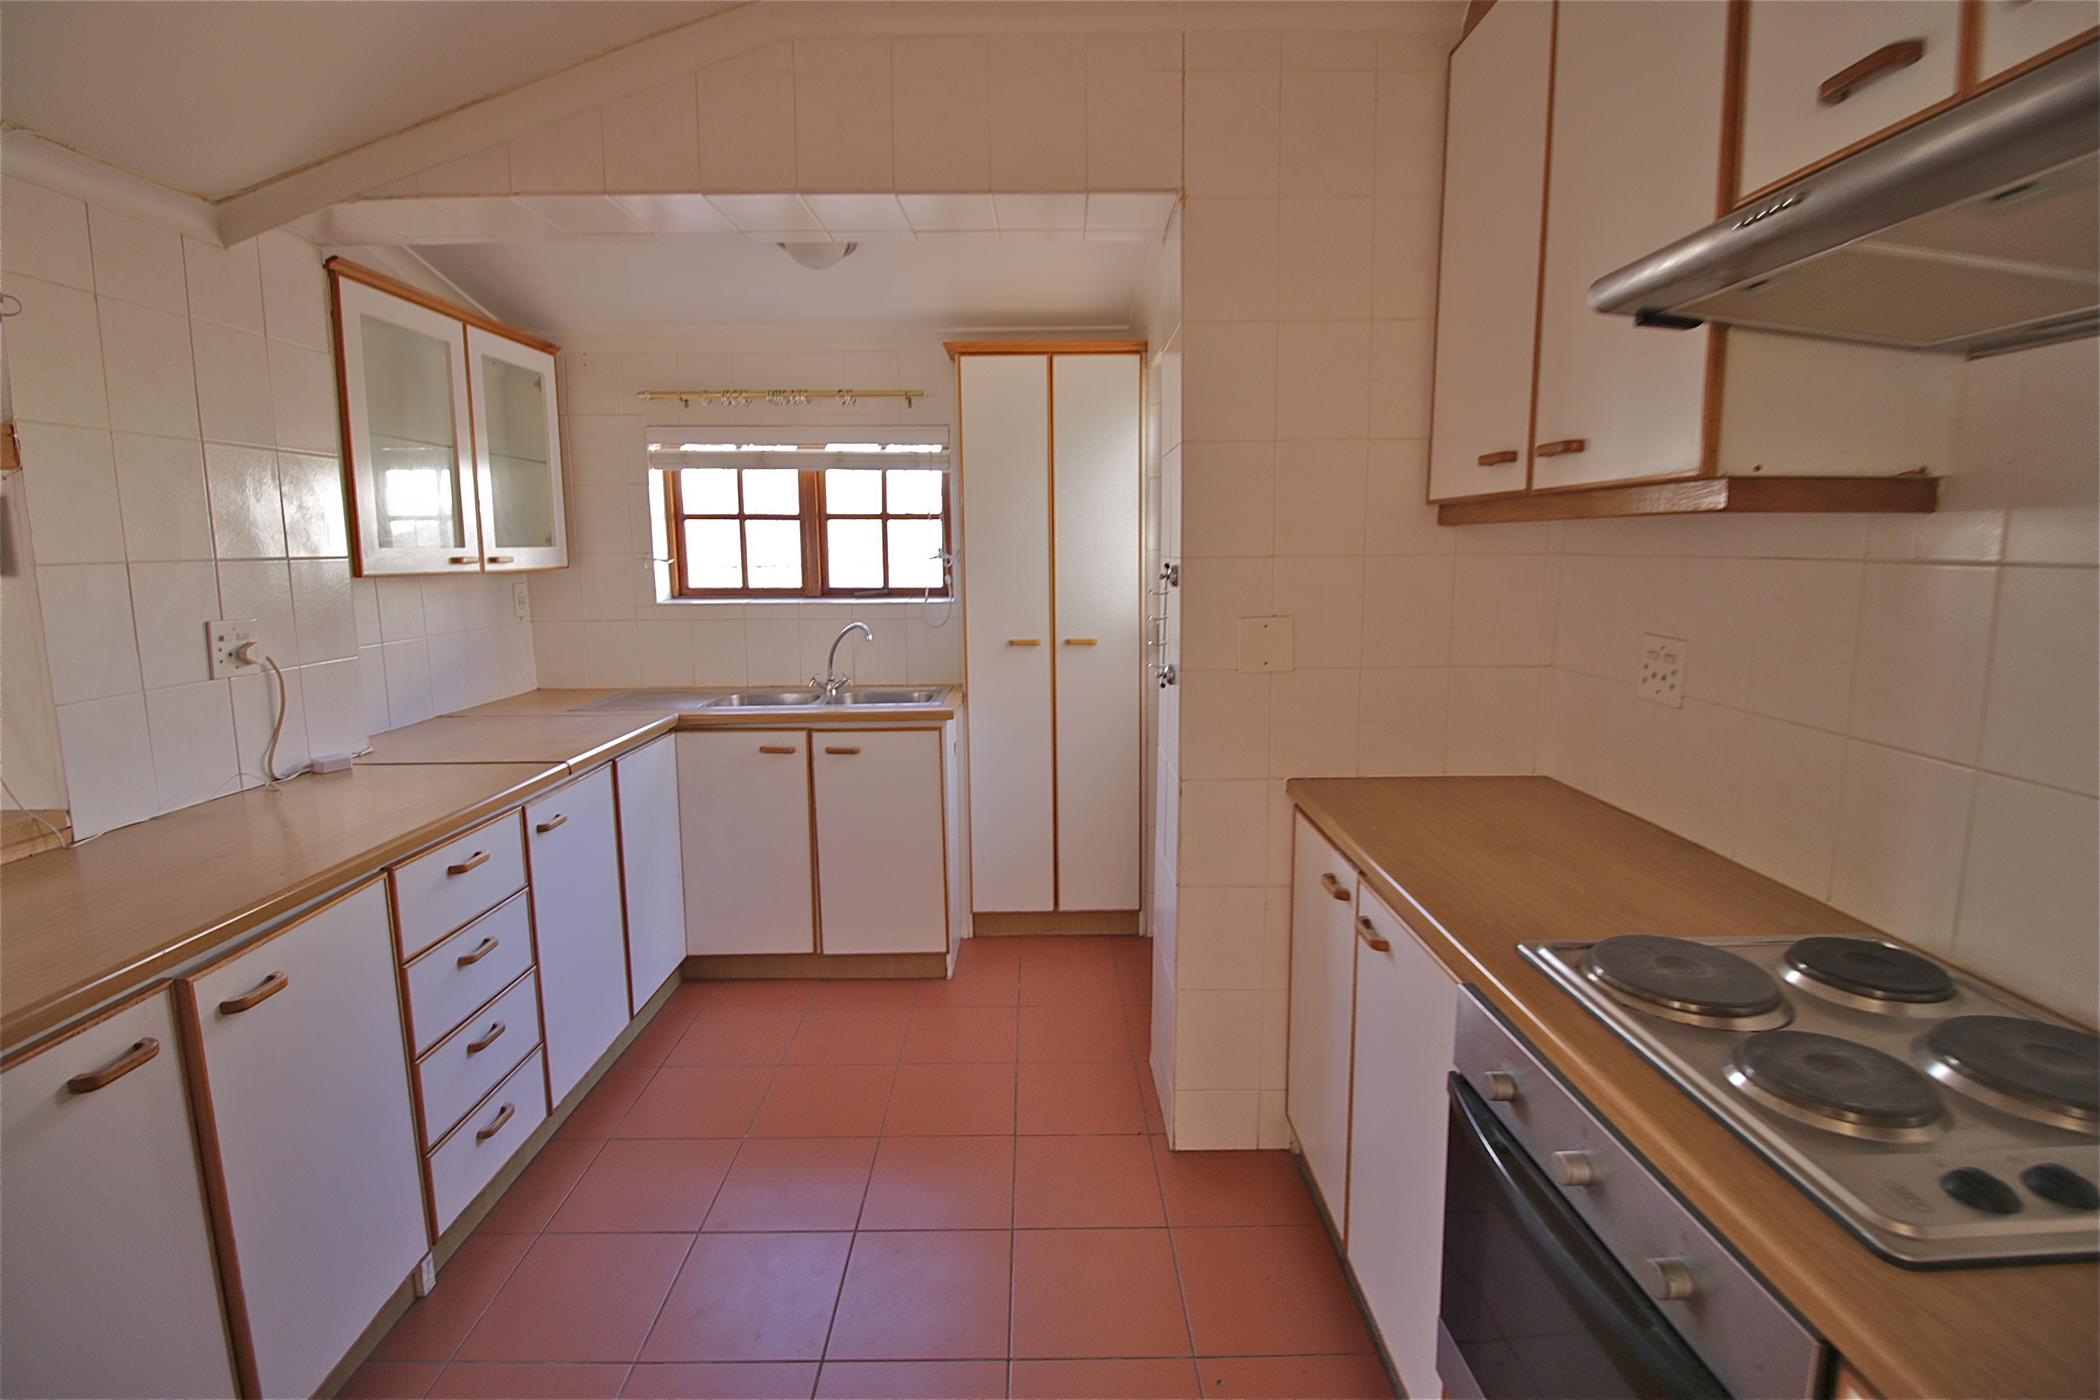 https://listing.pamgolding.co.za/images/properties/201904/1306993/H/1306993_H_33.jpg